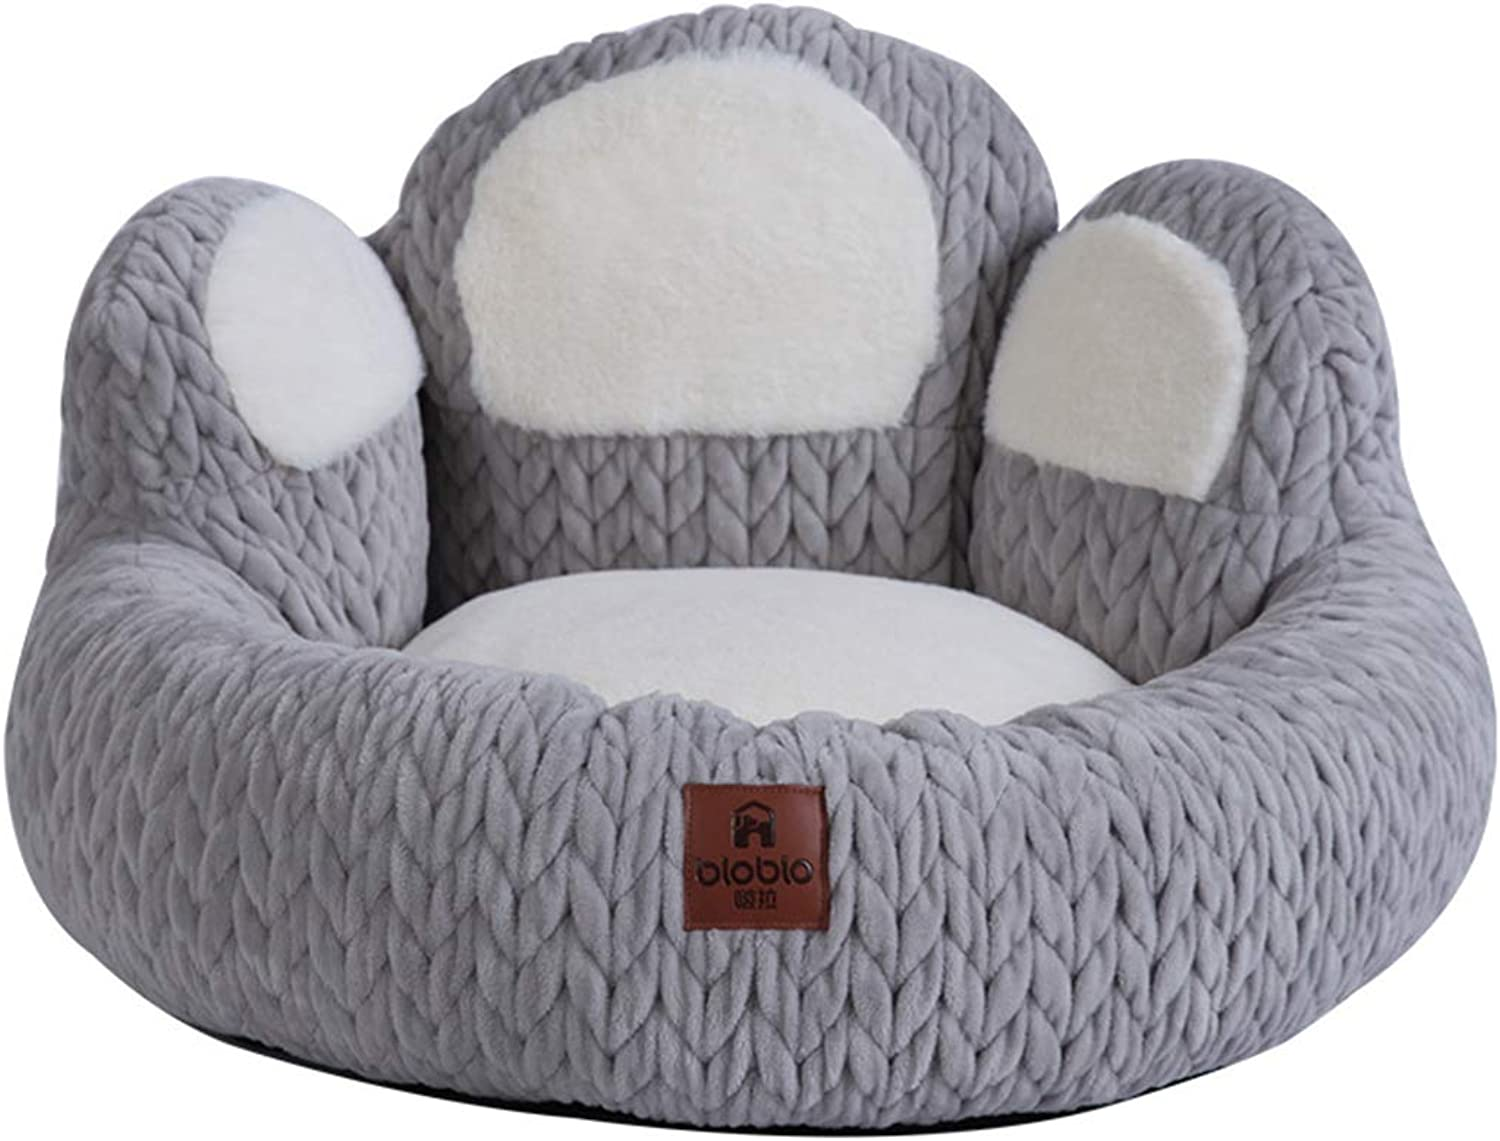 Pet Dog Bed Soft Sofa Bed Bolster Dog Bed for Small Medium Cats and Dogs (Grey, Cactus Style)